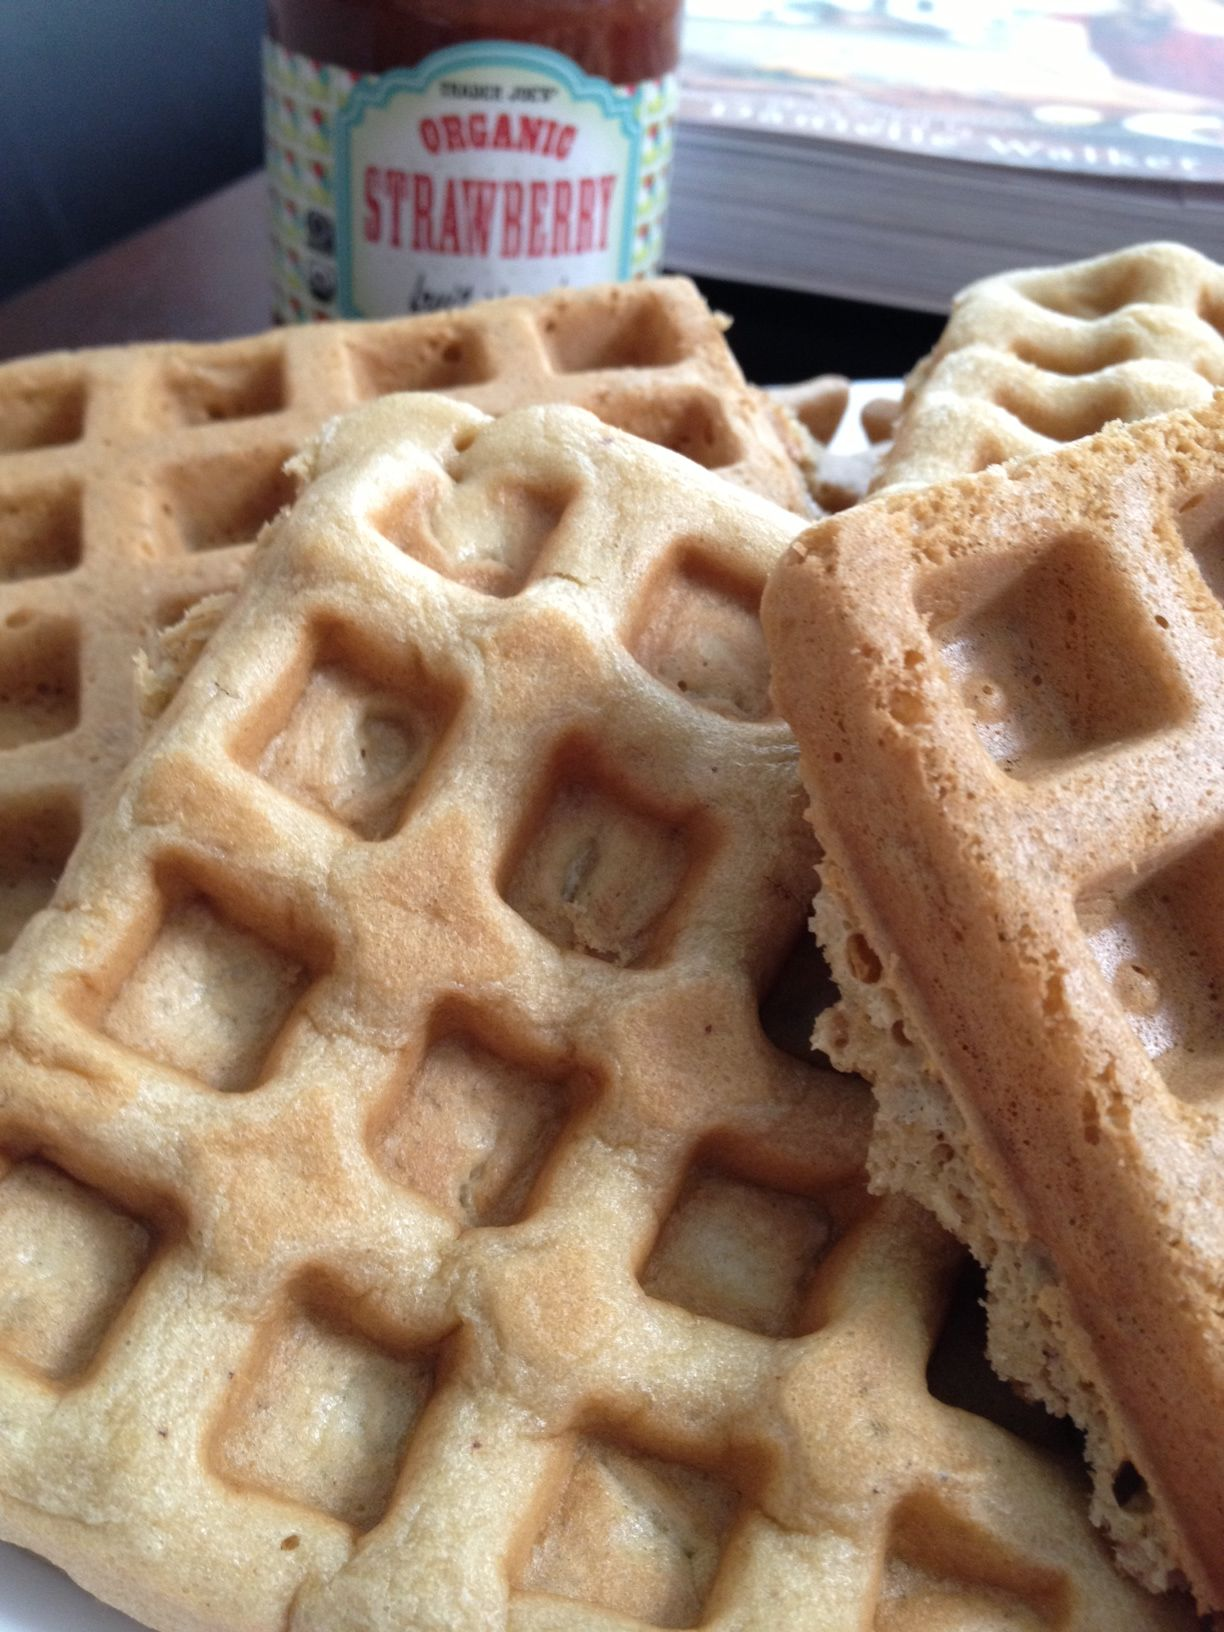 Grain-free waffles from Against All Grain. So delicious on ...